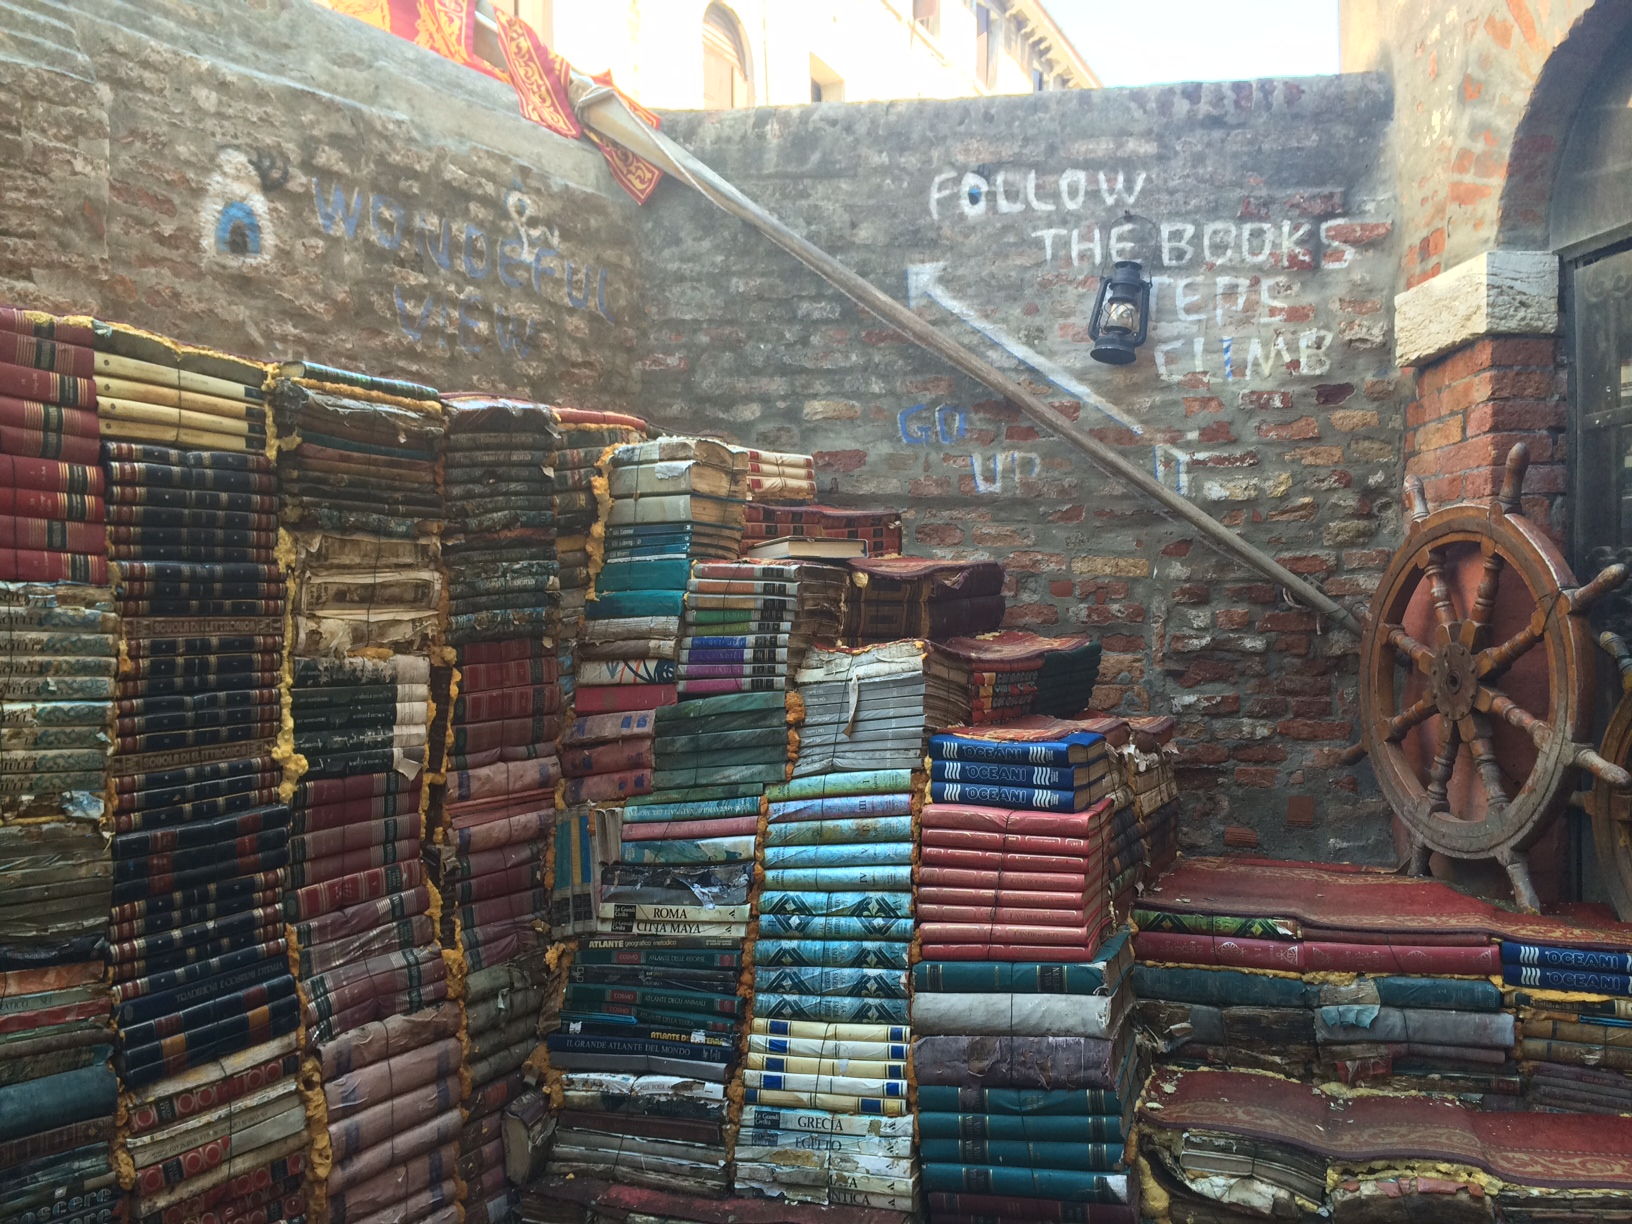 Libreria Acqua Alta in Venice, possibly the best/ most beautiful bookstore in the world.